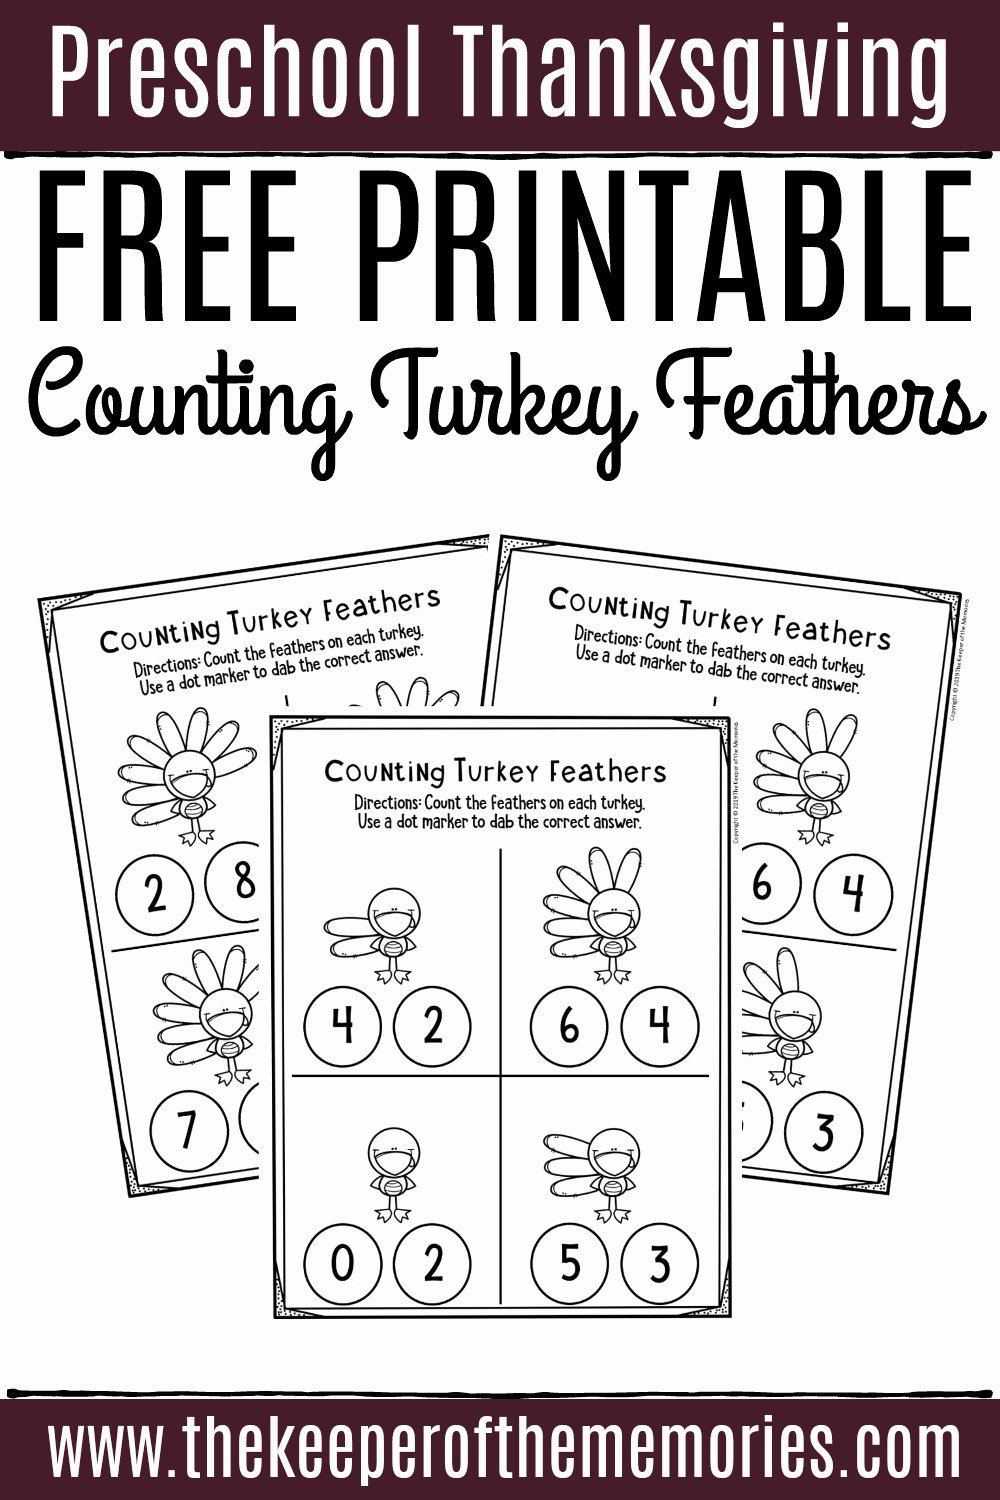 Thanksgiving Worksheets for Preschoolers Inspirational Free Printable Counting Thanksgiving Preschool Worksheets